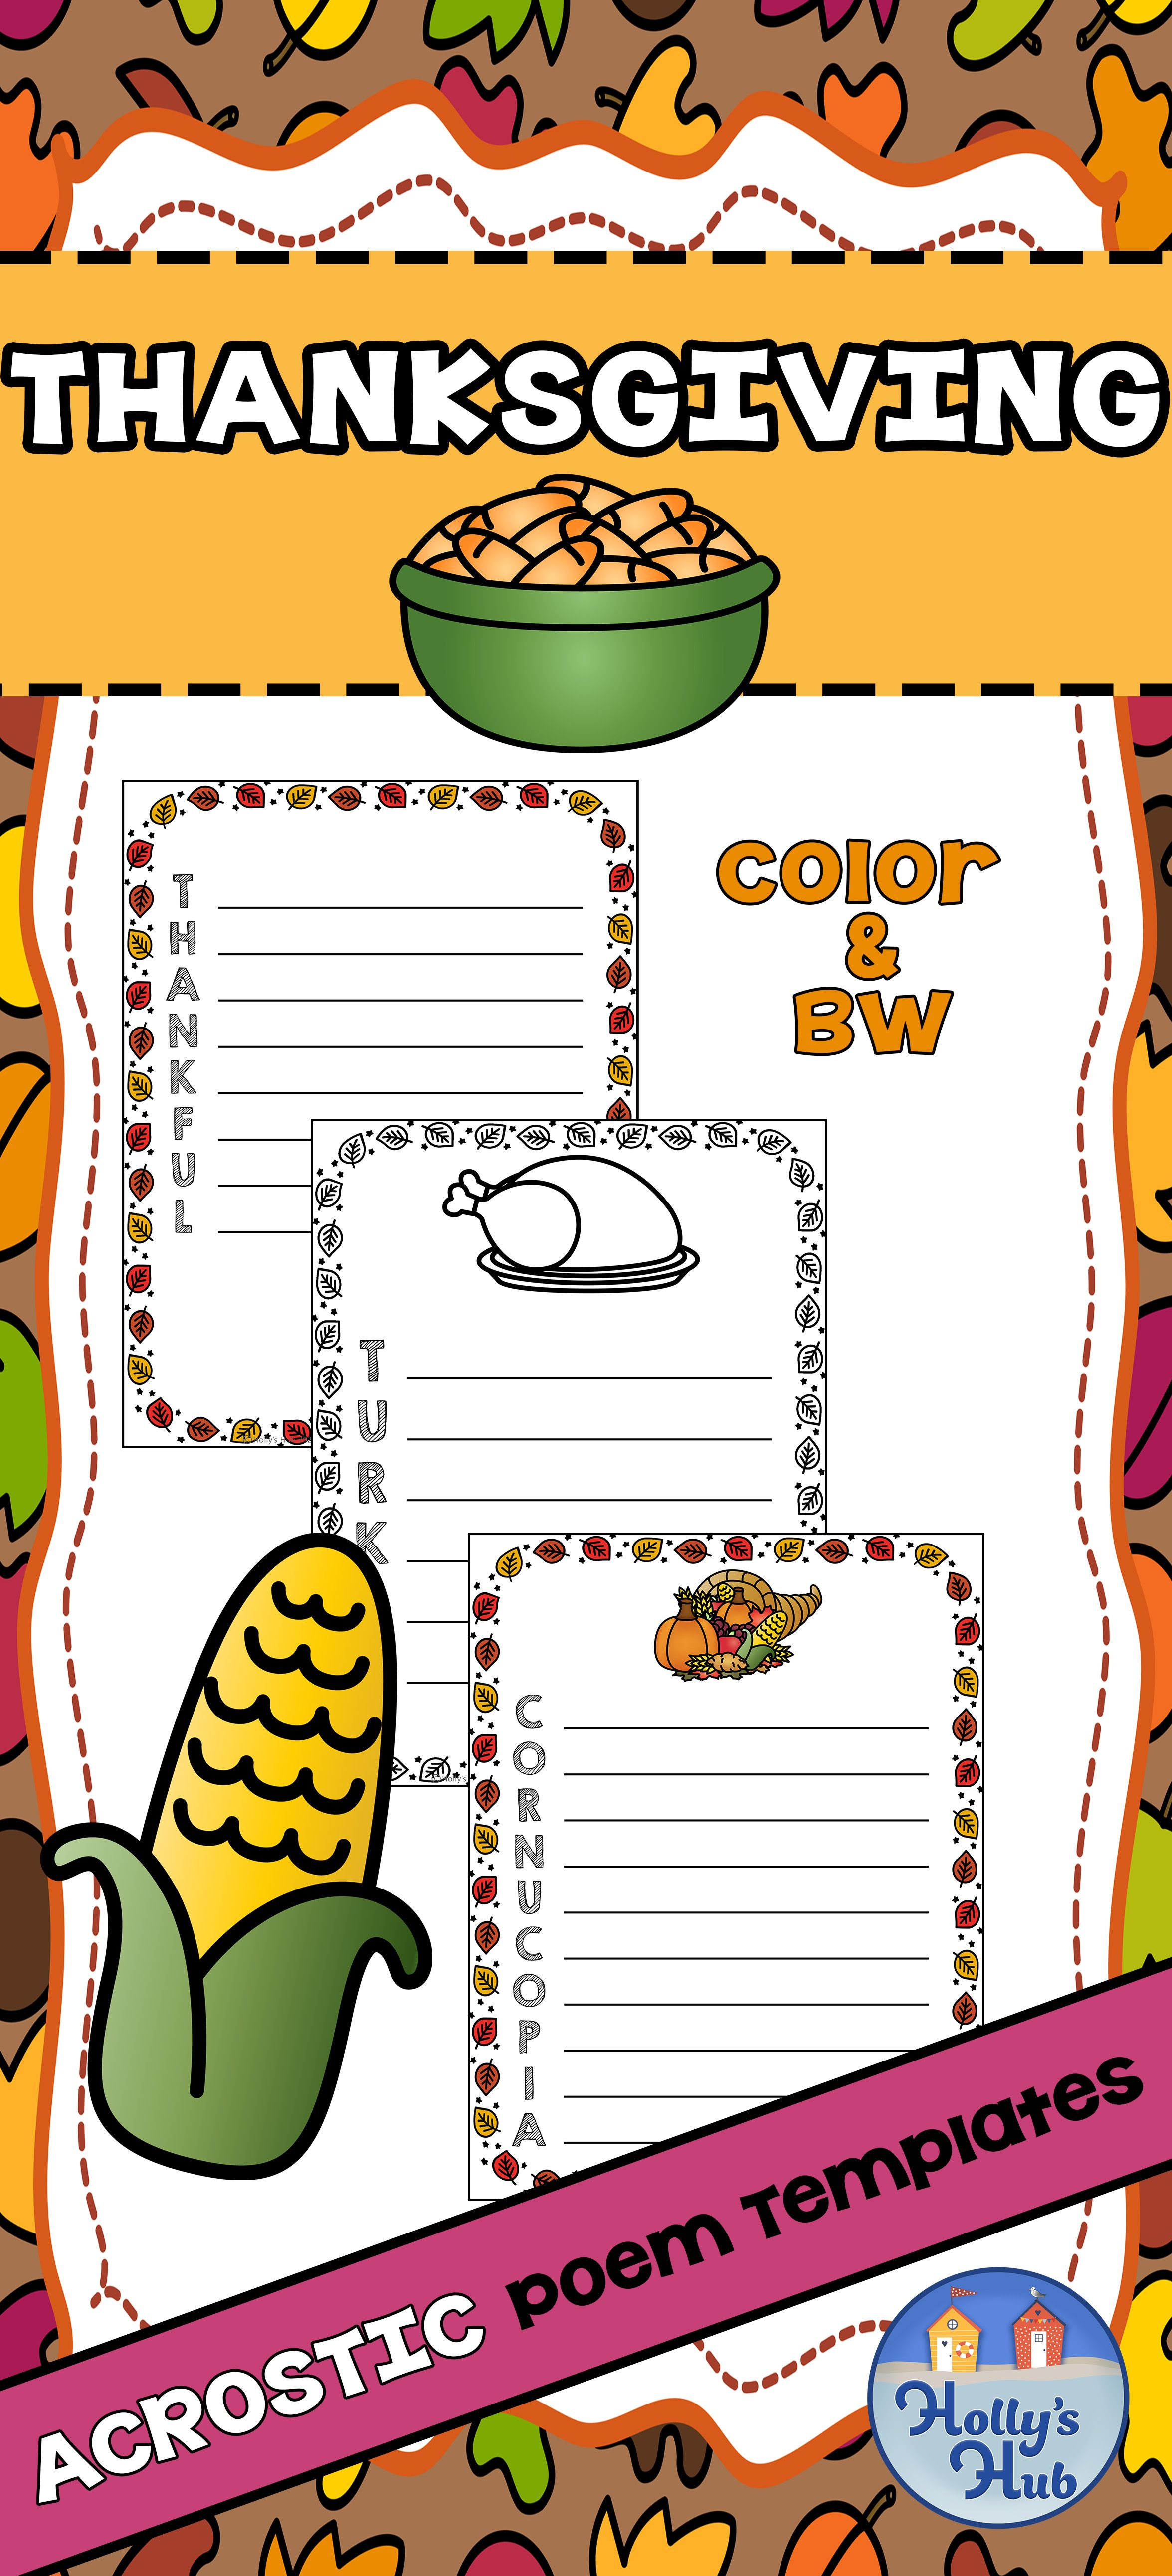 Acrostic Poem Templates Thanksgiving Harvest In